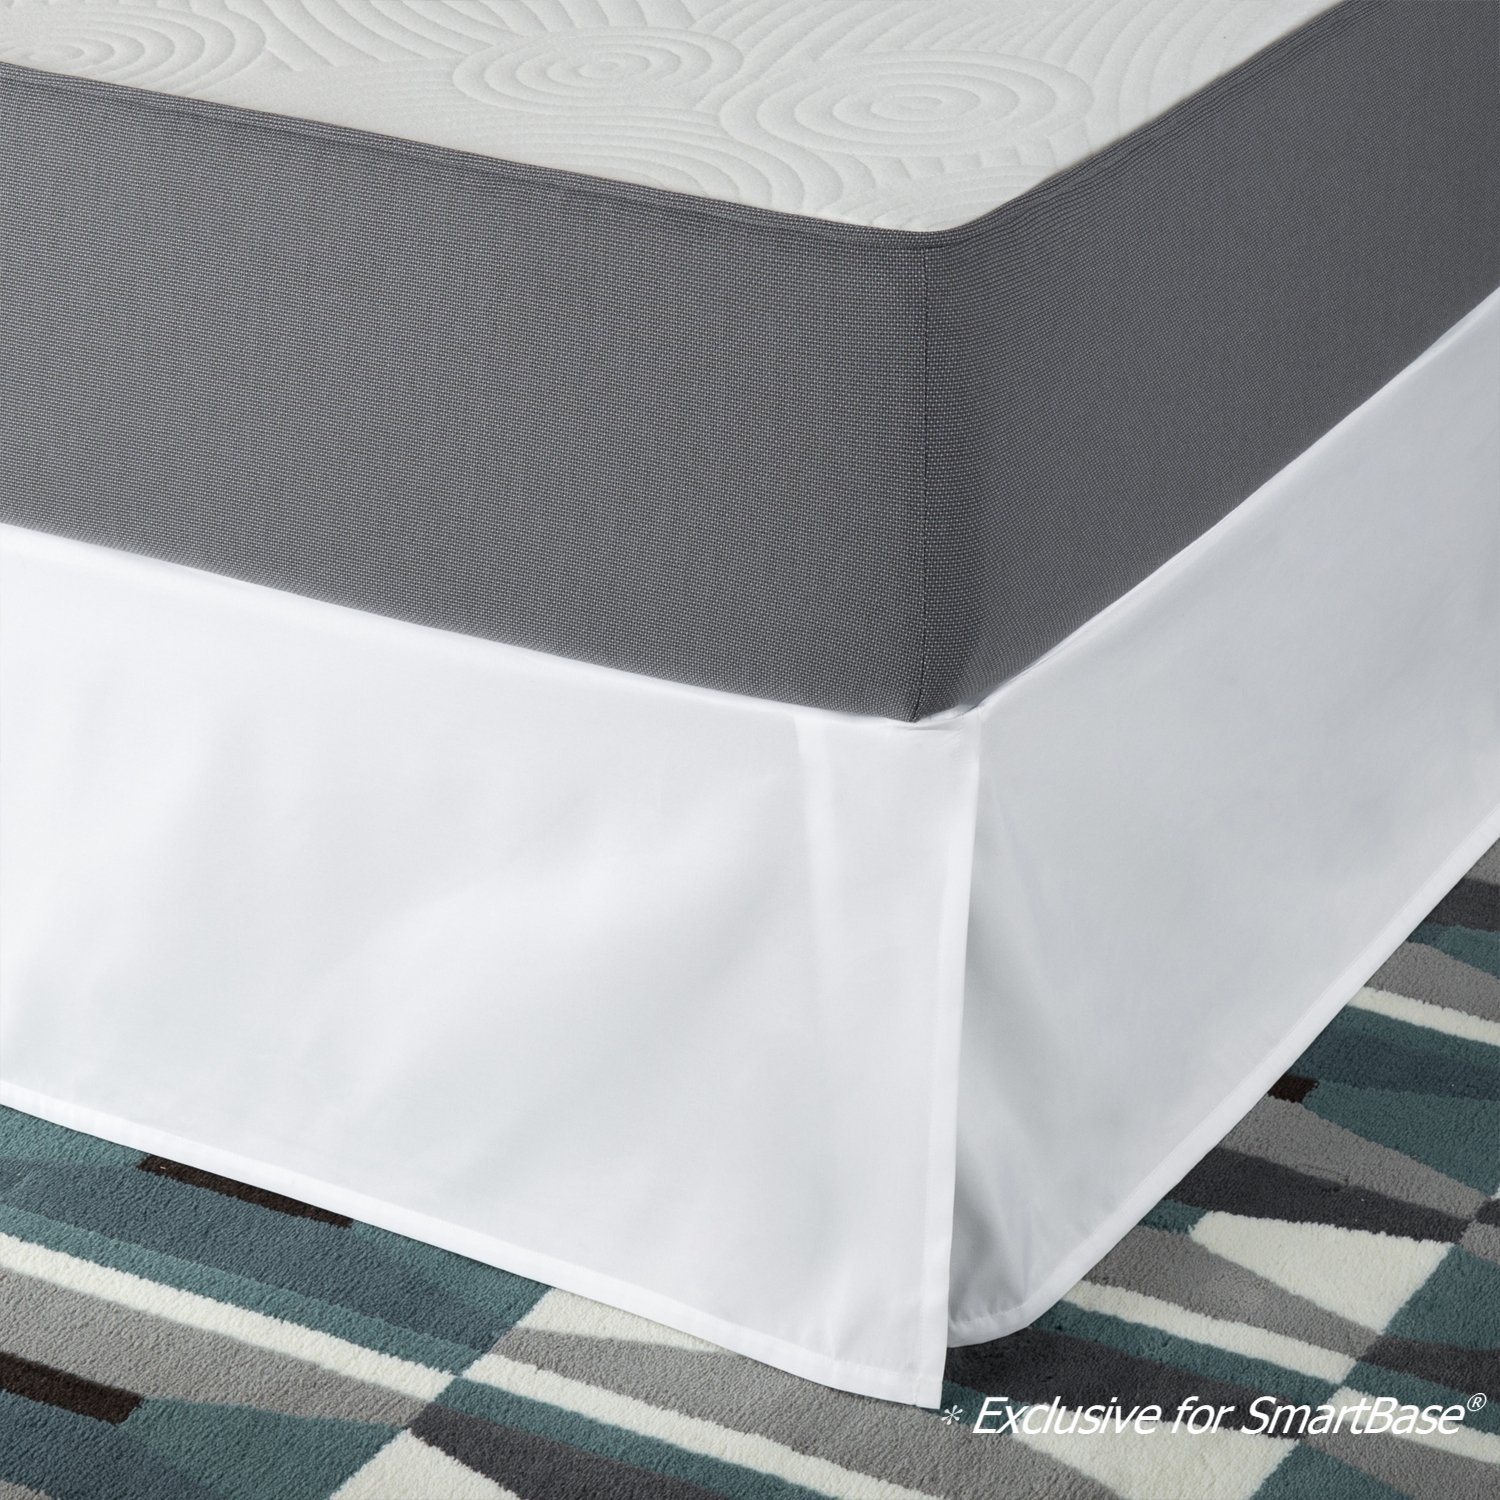 Zinus SmartBase Easy On/Easy Off Bed Skirt for 16 Inch SmartBase Mattress Foundation, King